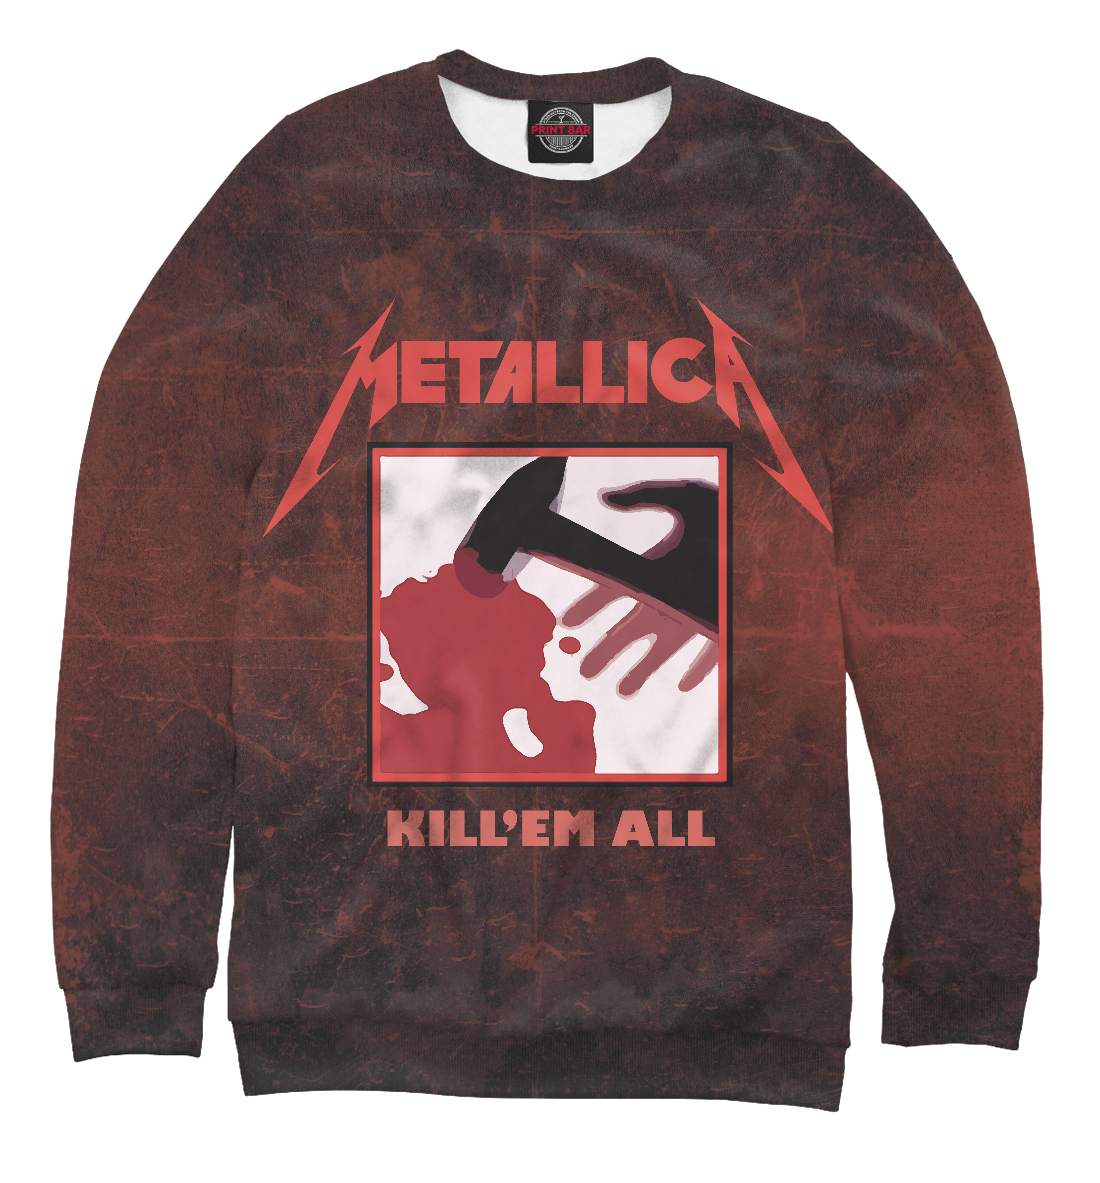 Metallica - Kill Em All metallica metallica kill em all